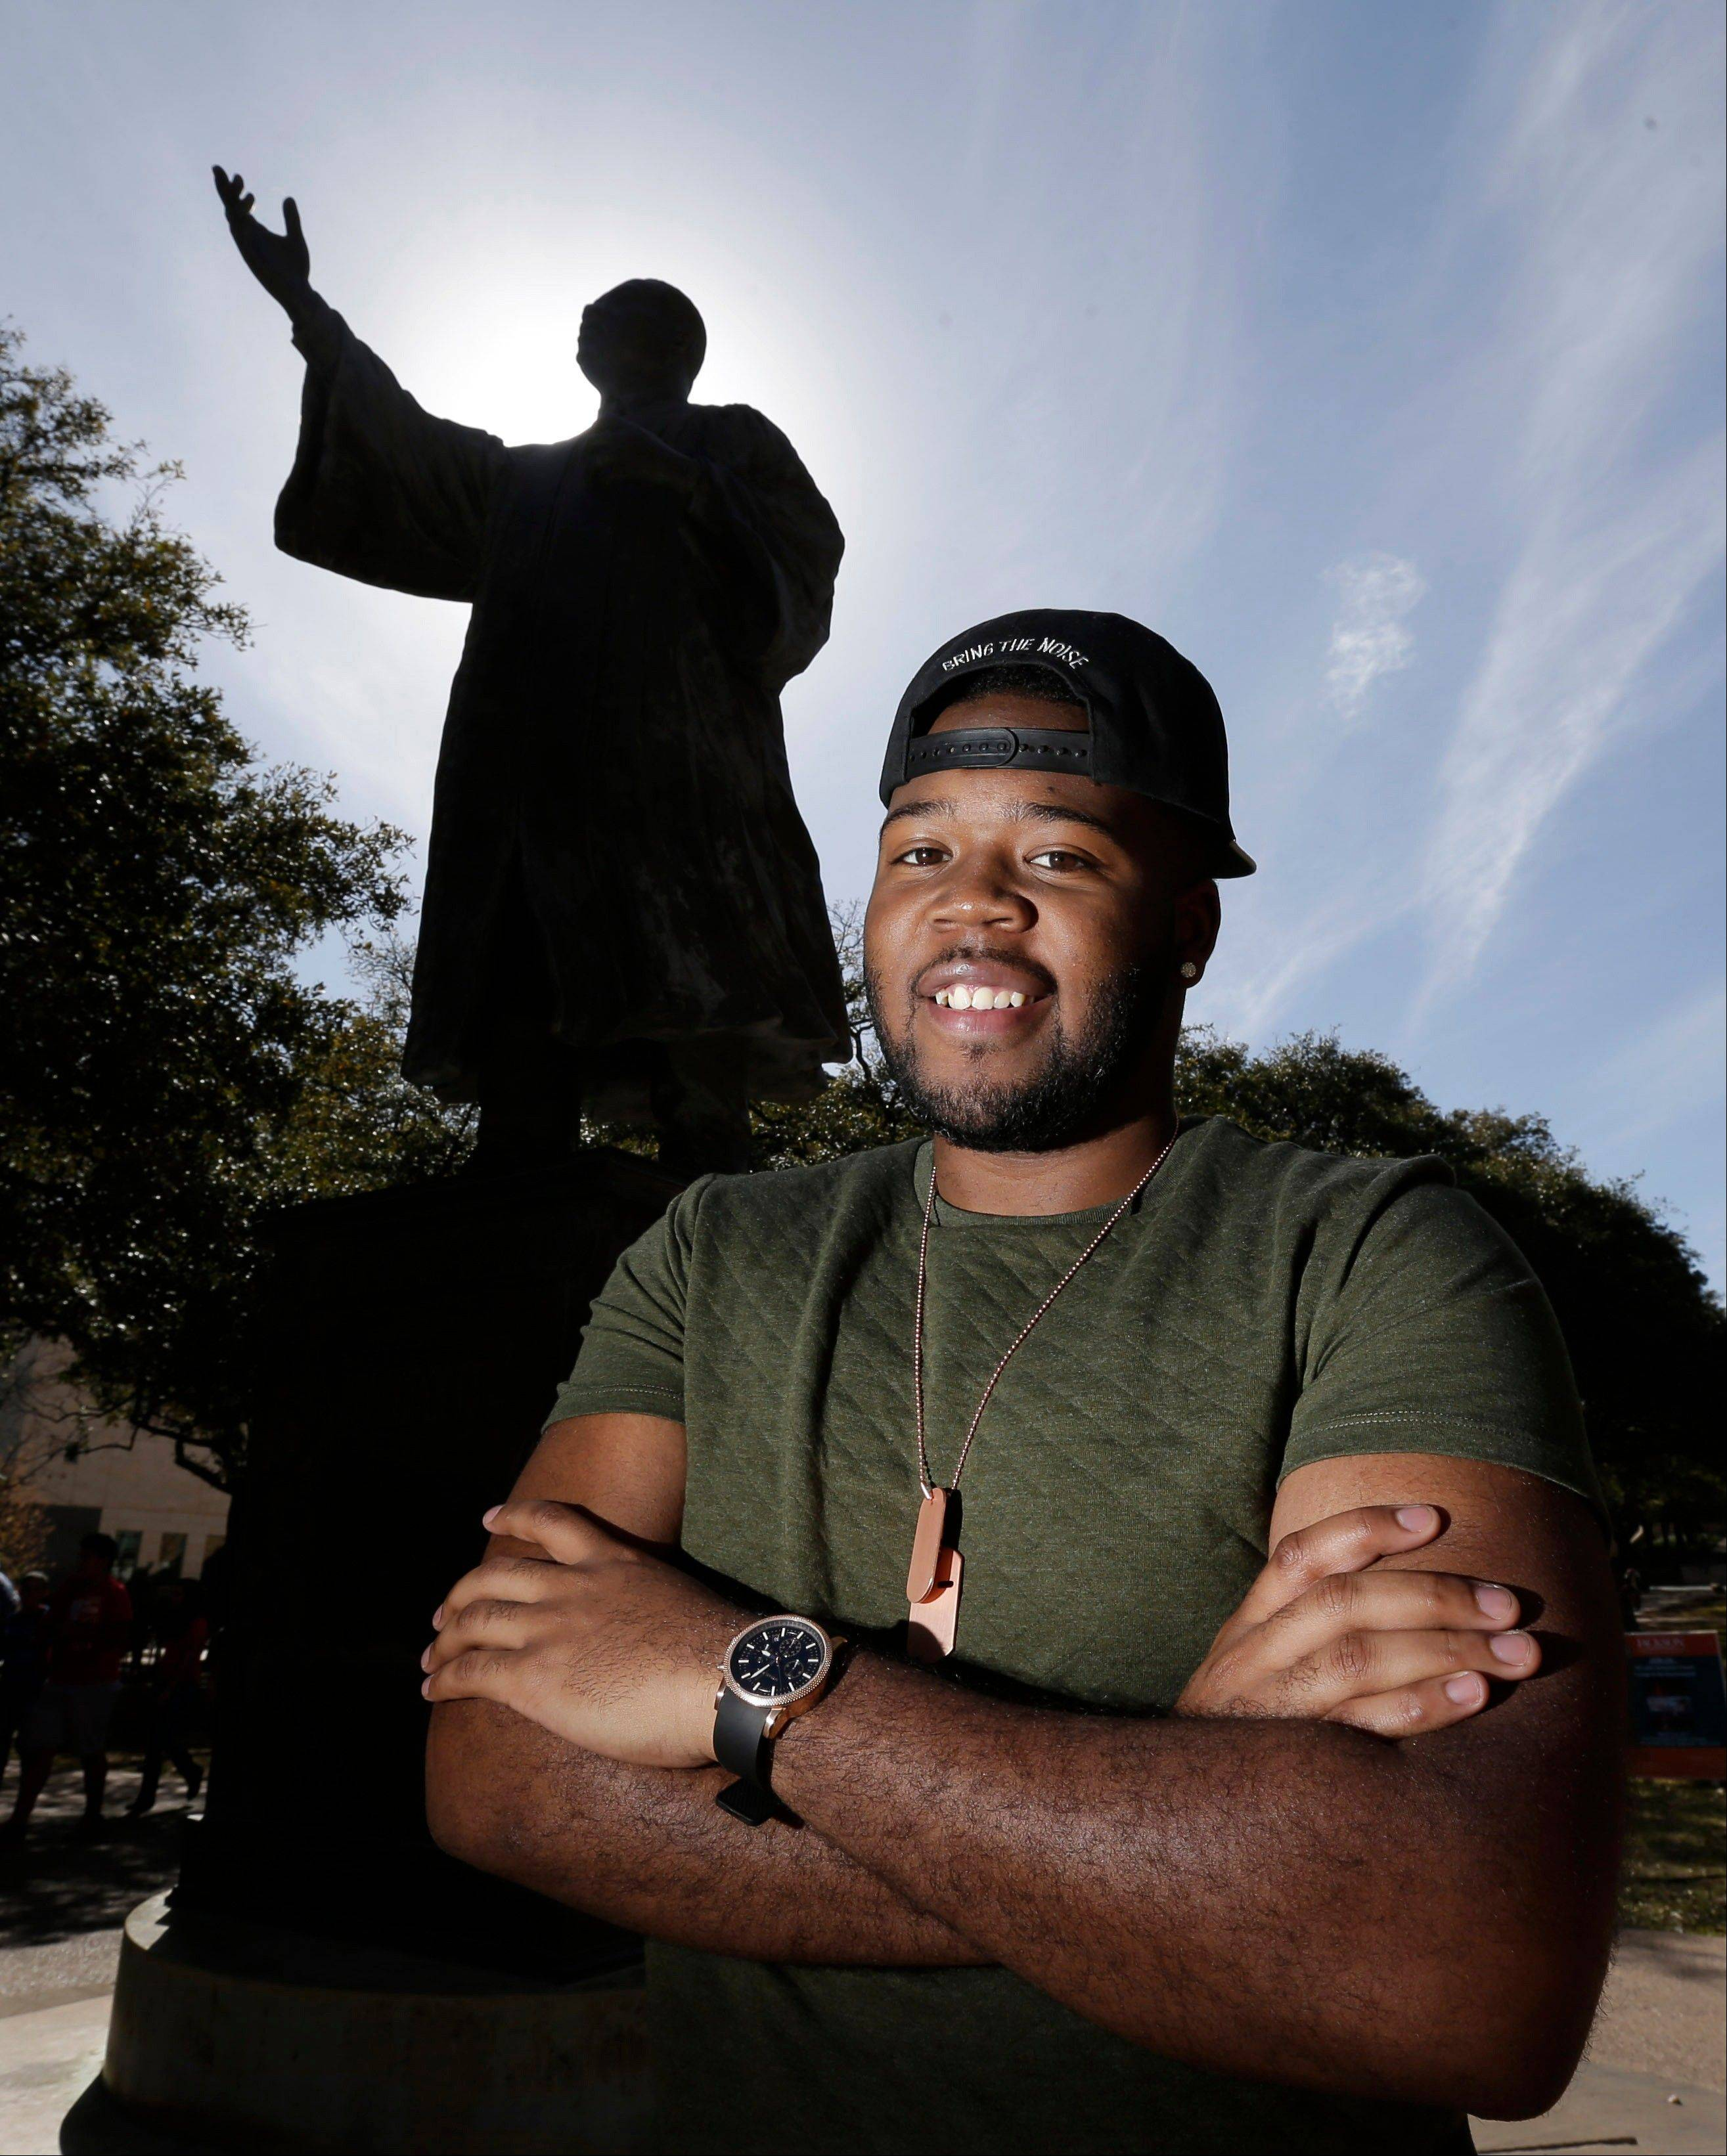 University of Texas senior Bradley Poole, an advertising major, became president of the school's Black Student Alliance, seeking camaraderie after noticing he often was the only African-American in his classes.